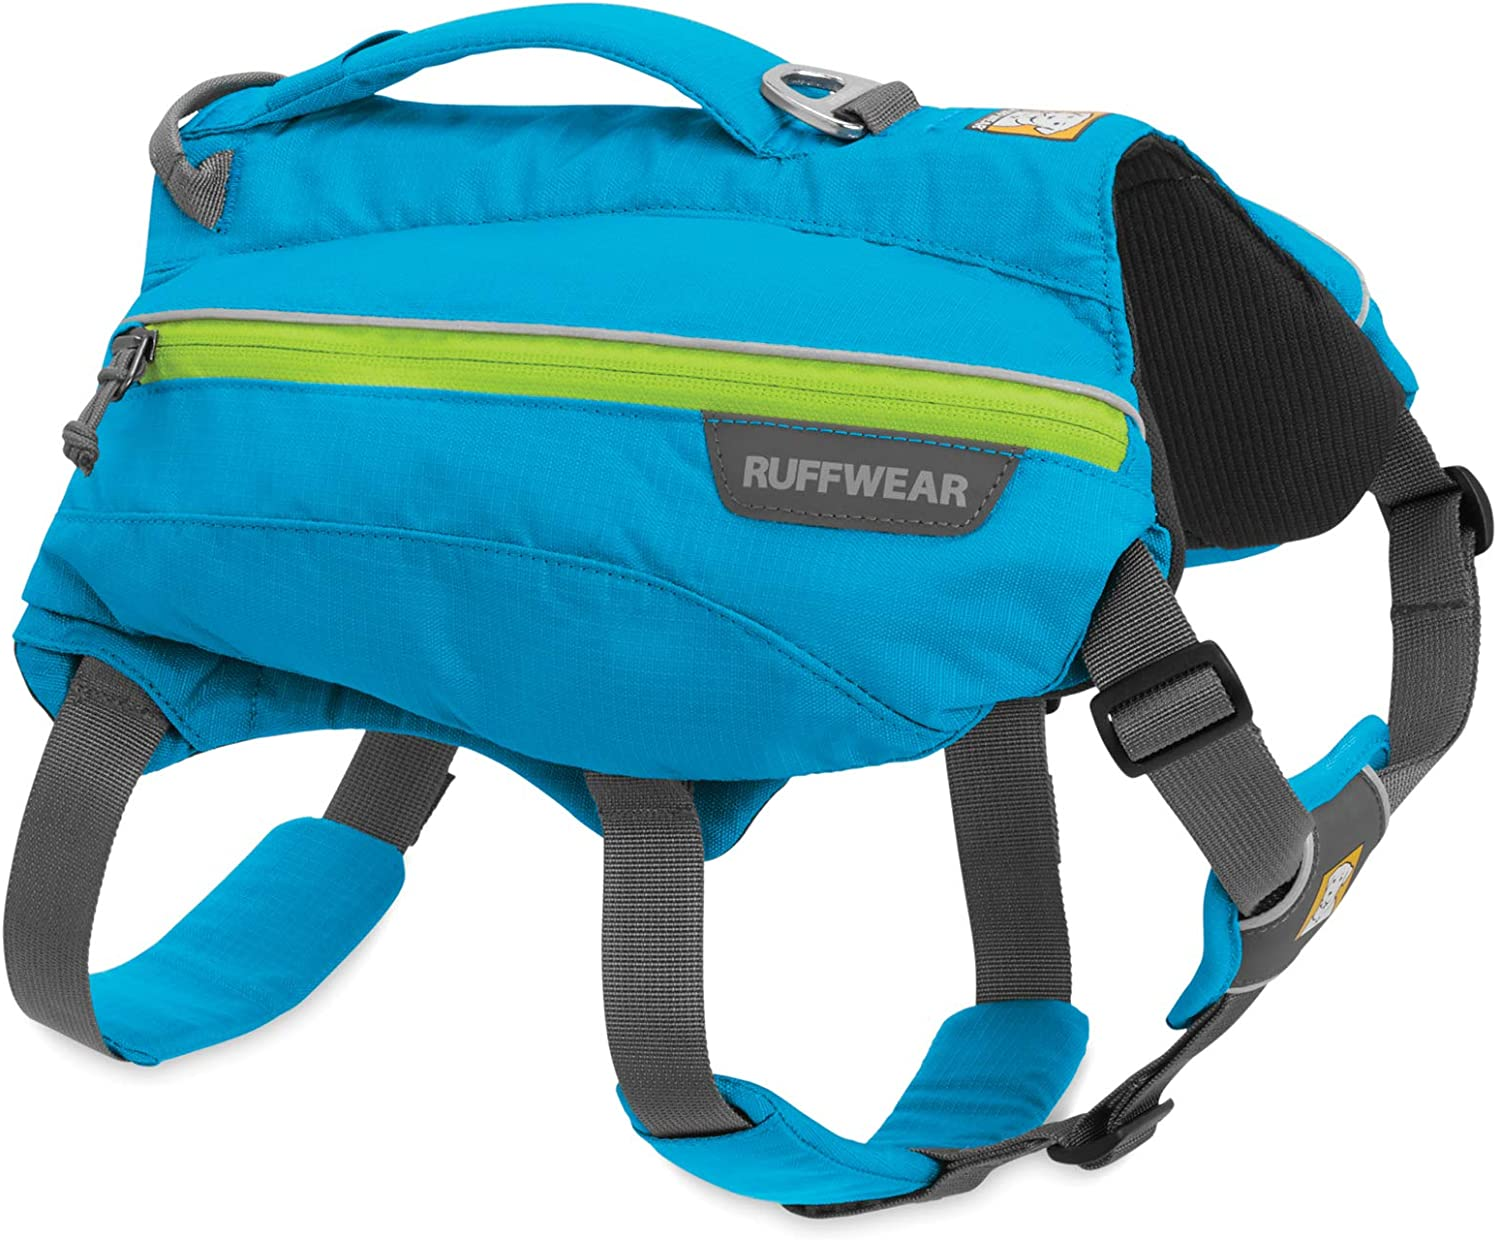 RUFFWEAR - Singletrak Dog Pack, Hiking Backpack with Hydration Bladders